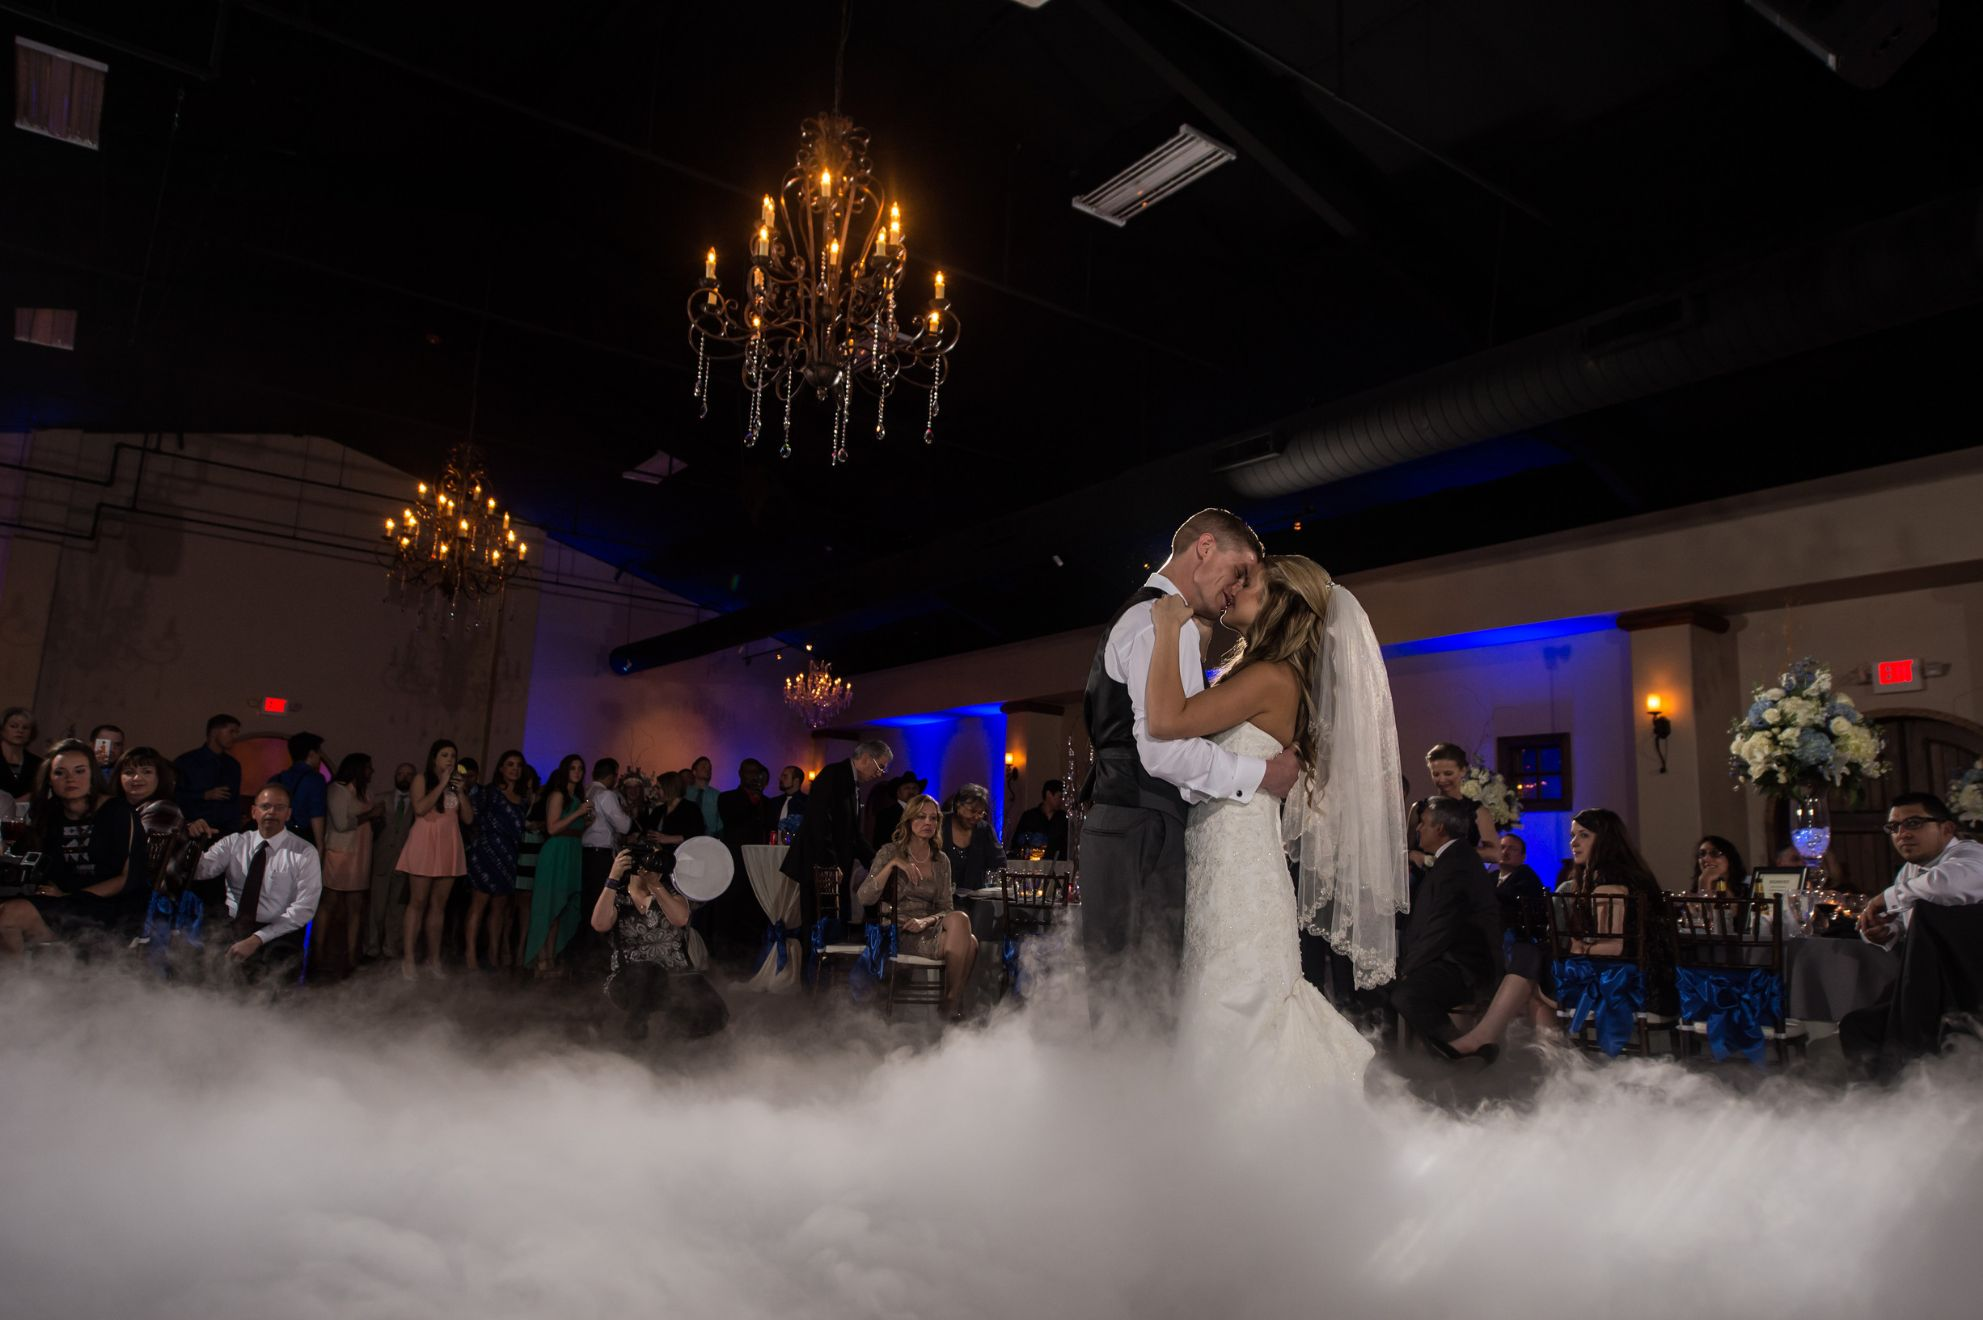 houston wedding DJ, sugar land wedding DJ, houston texas DJ, corporate event DJ in houston